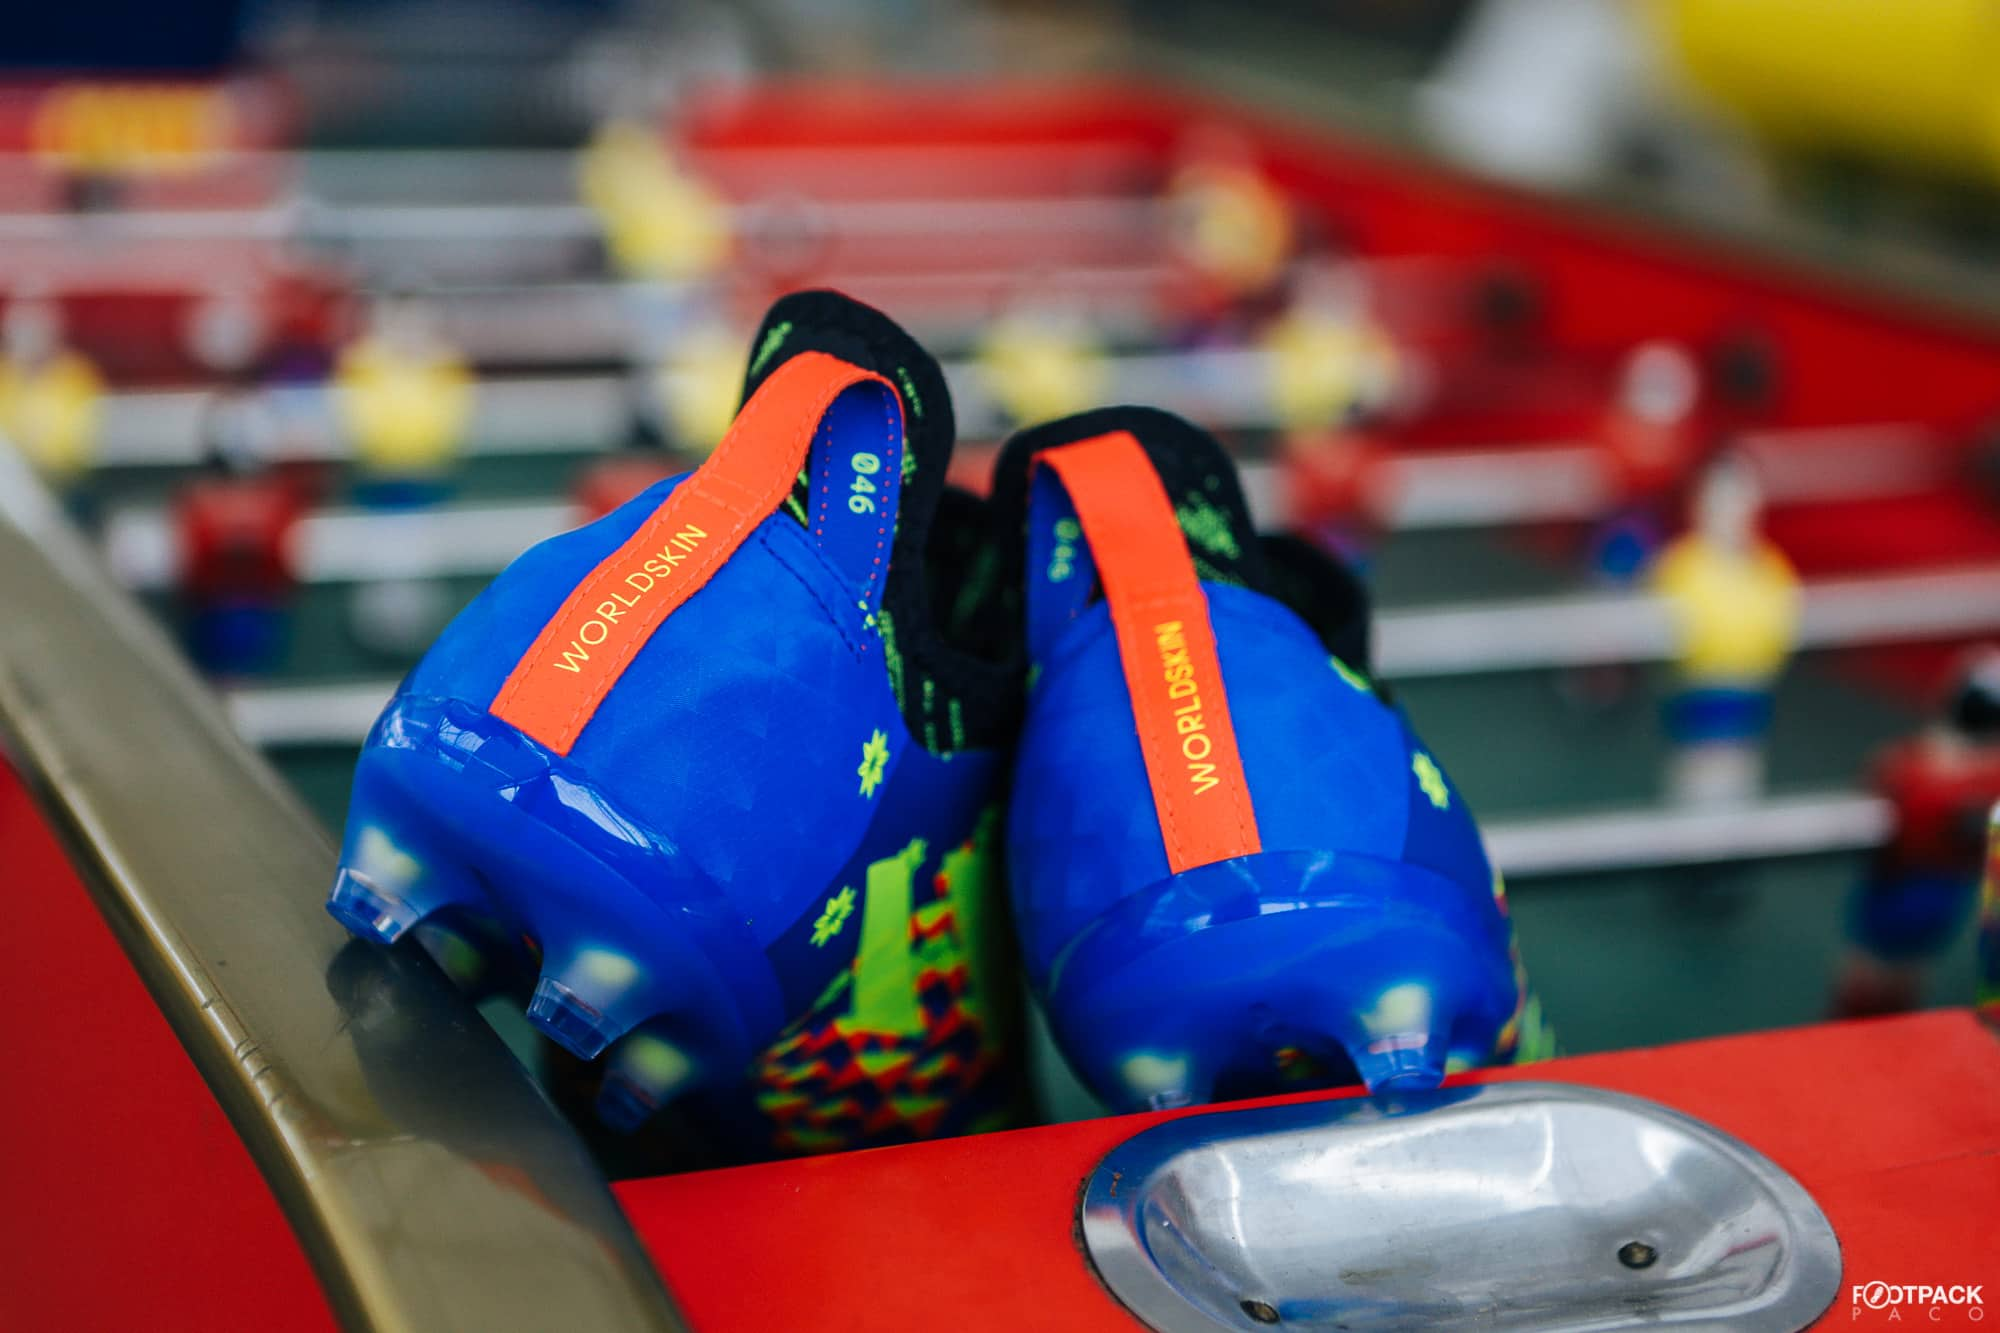 Chaussures-football-adidas-glitch-18-2-0-Worldskin-France-Coupe-Monde-Juin-2018-1